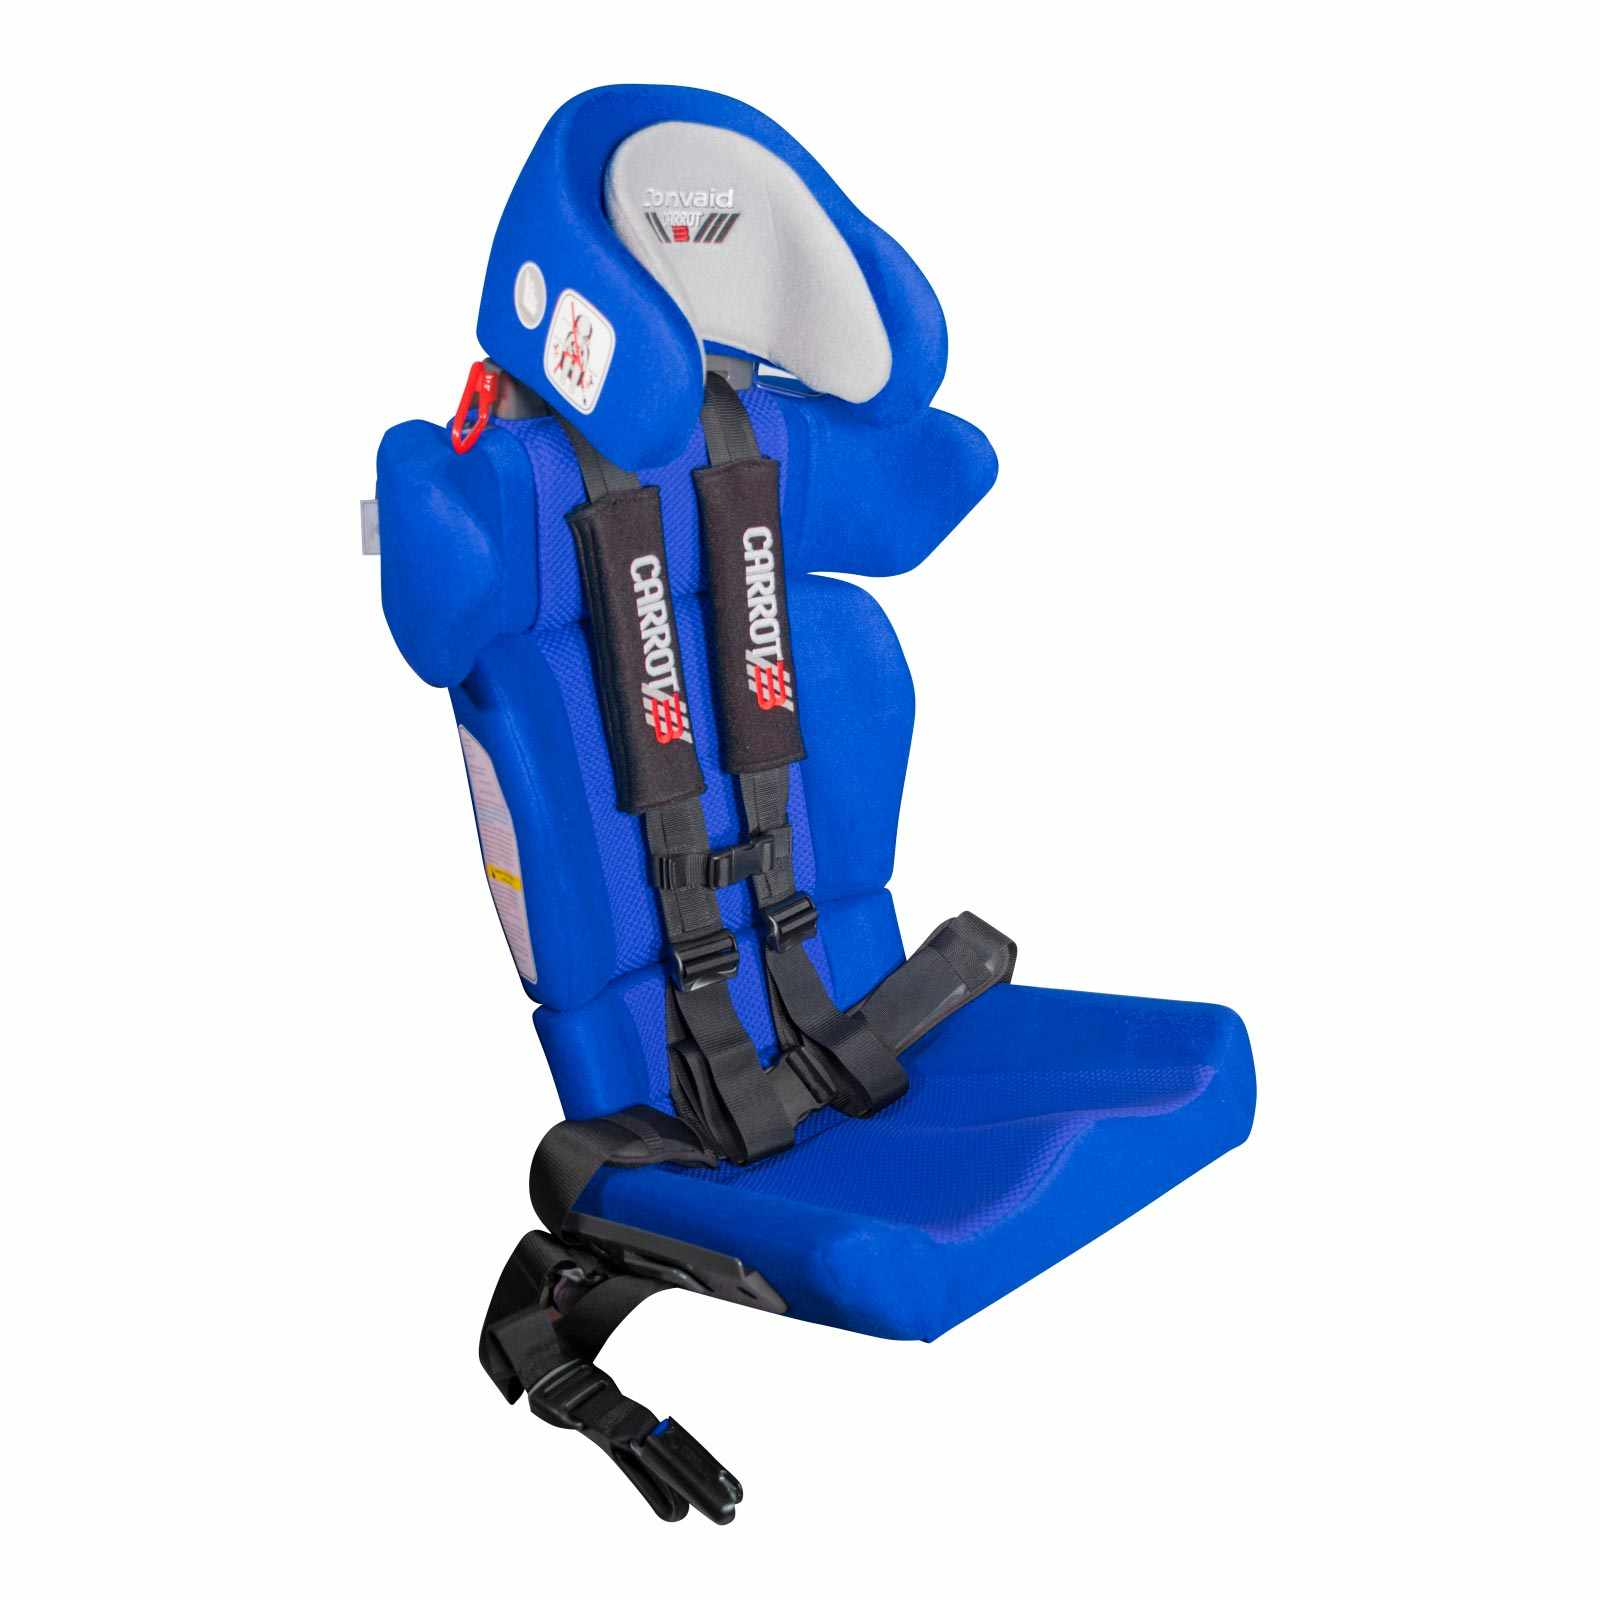 Convaid carrot 3 booster seat